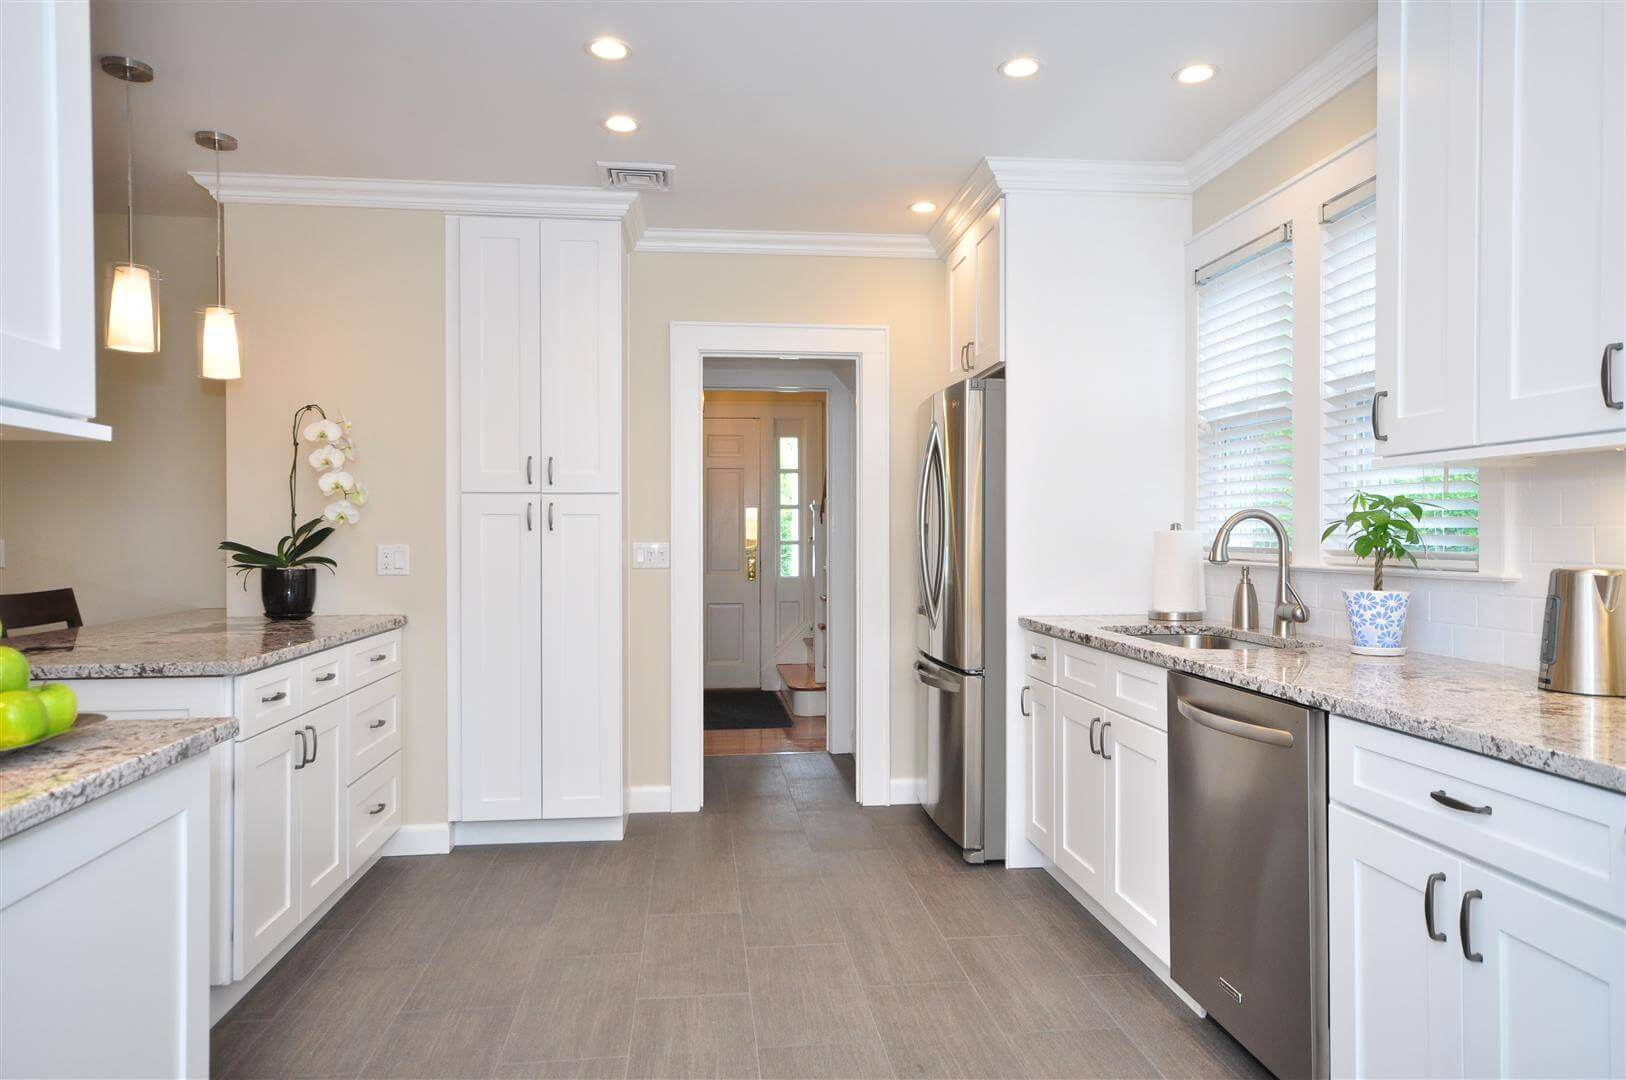 Crisp white cabinetry pairs with granite countertops and milk wall in this contemporary kitchen design. White pendant lights feature stainless steel cords and other stainless steel appliances add fun pattern and interest to the space